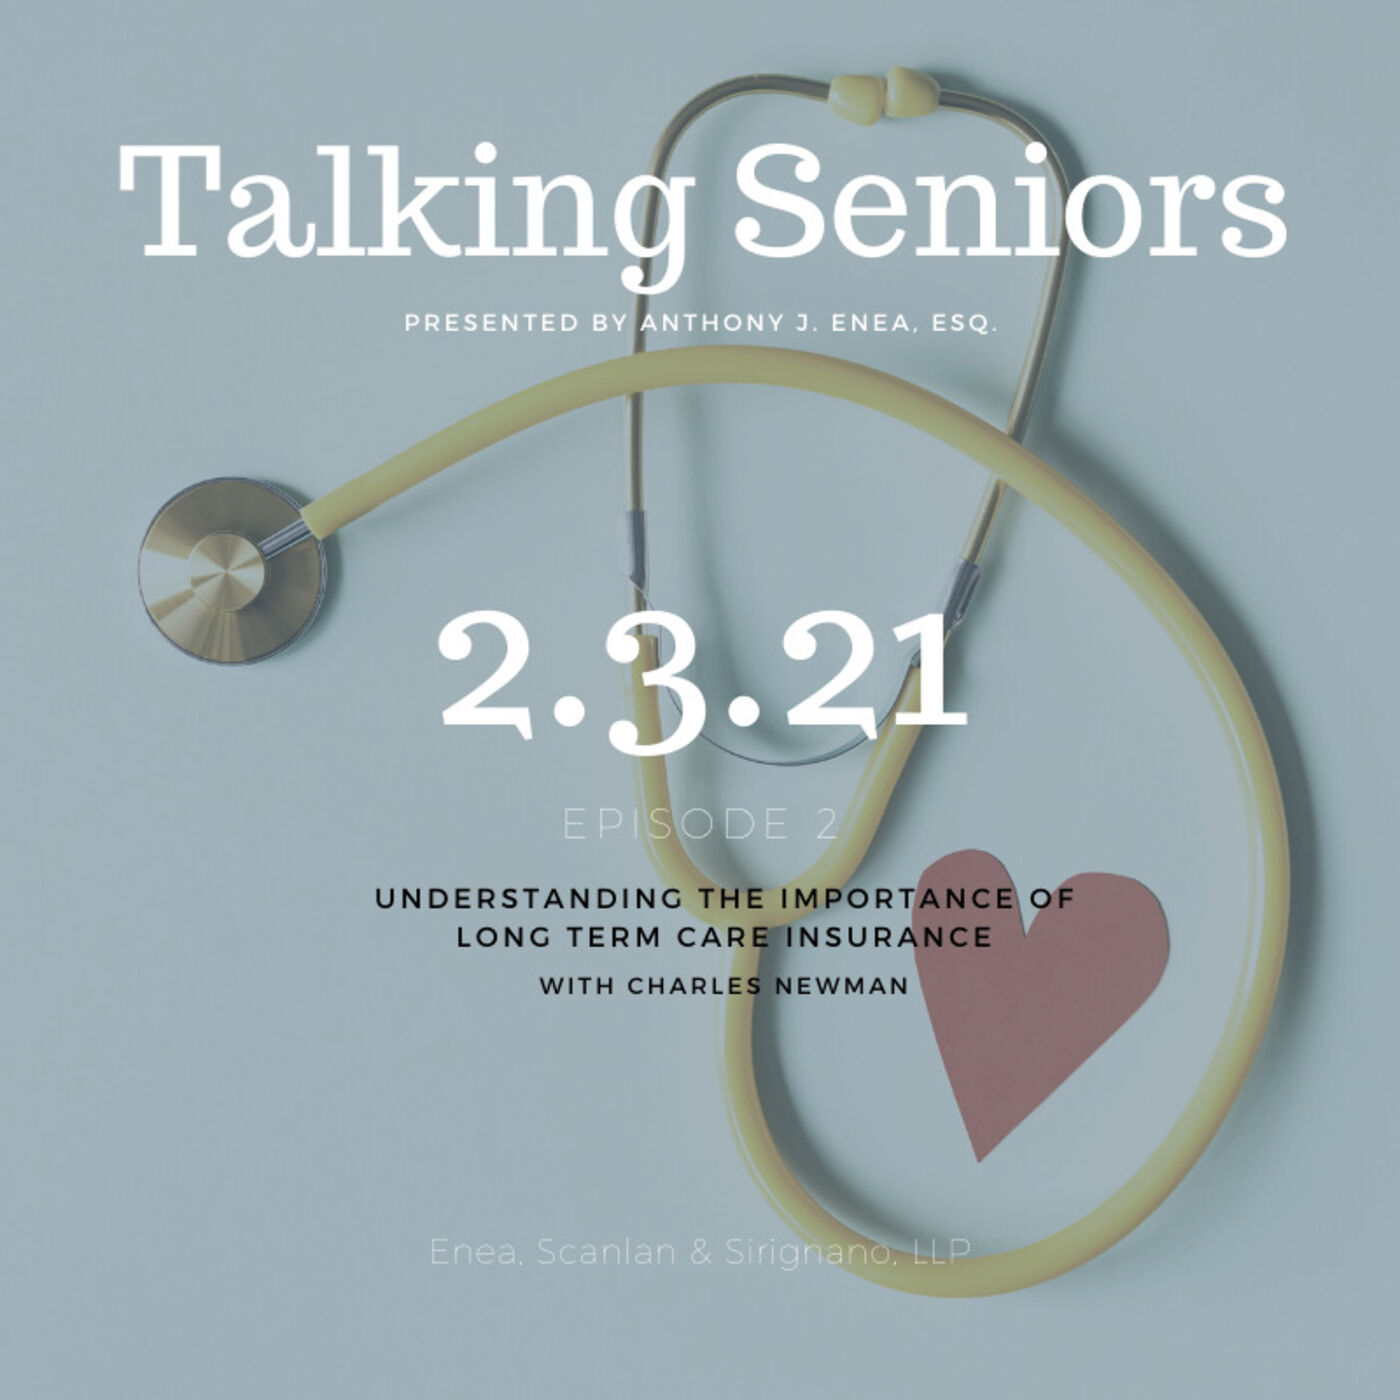 Episode 2: The Importance of Long Term Care Insurance